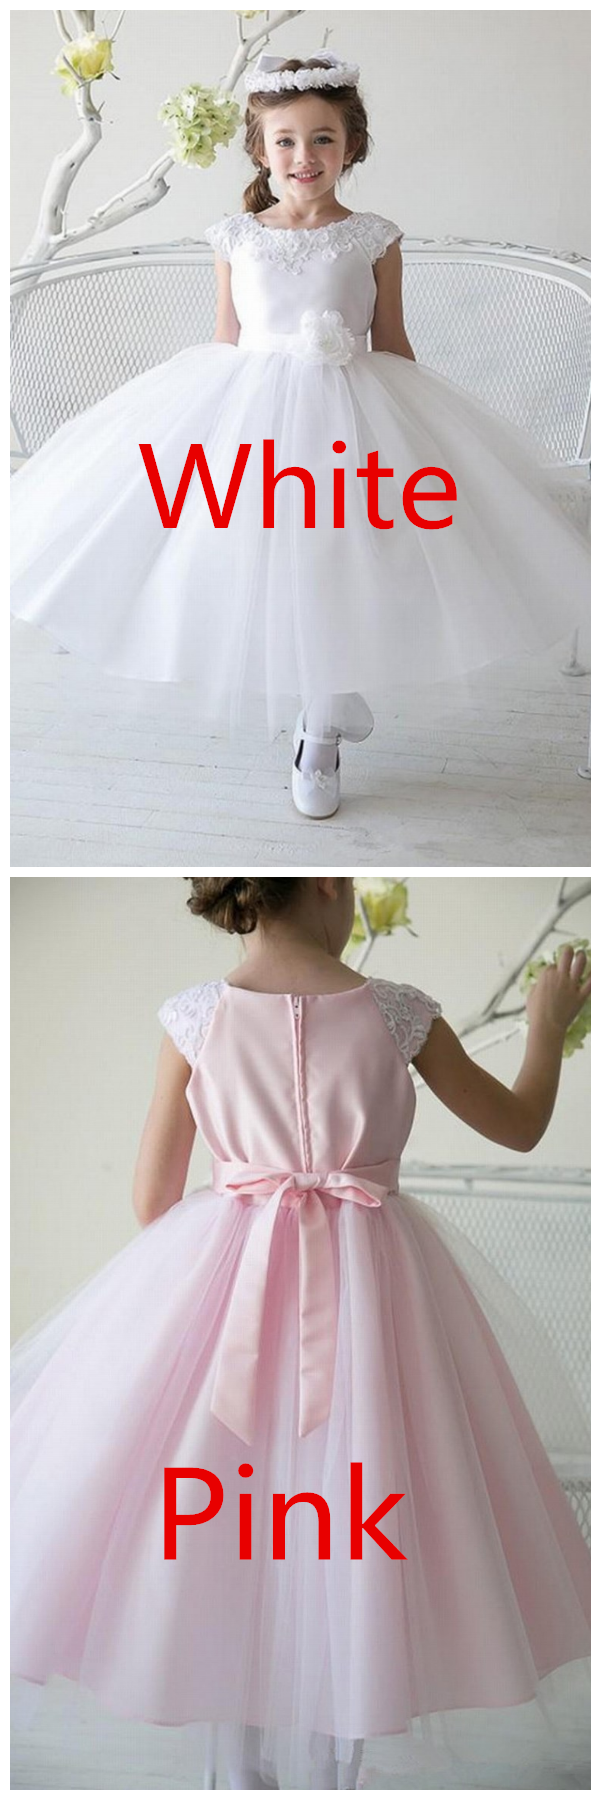 Girl Kids Clothes Lace Flower Girls Dress for Wedding Events Party Baby Girl Birthday